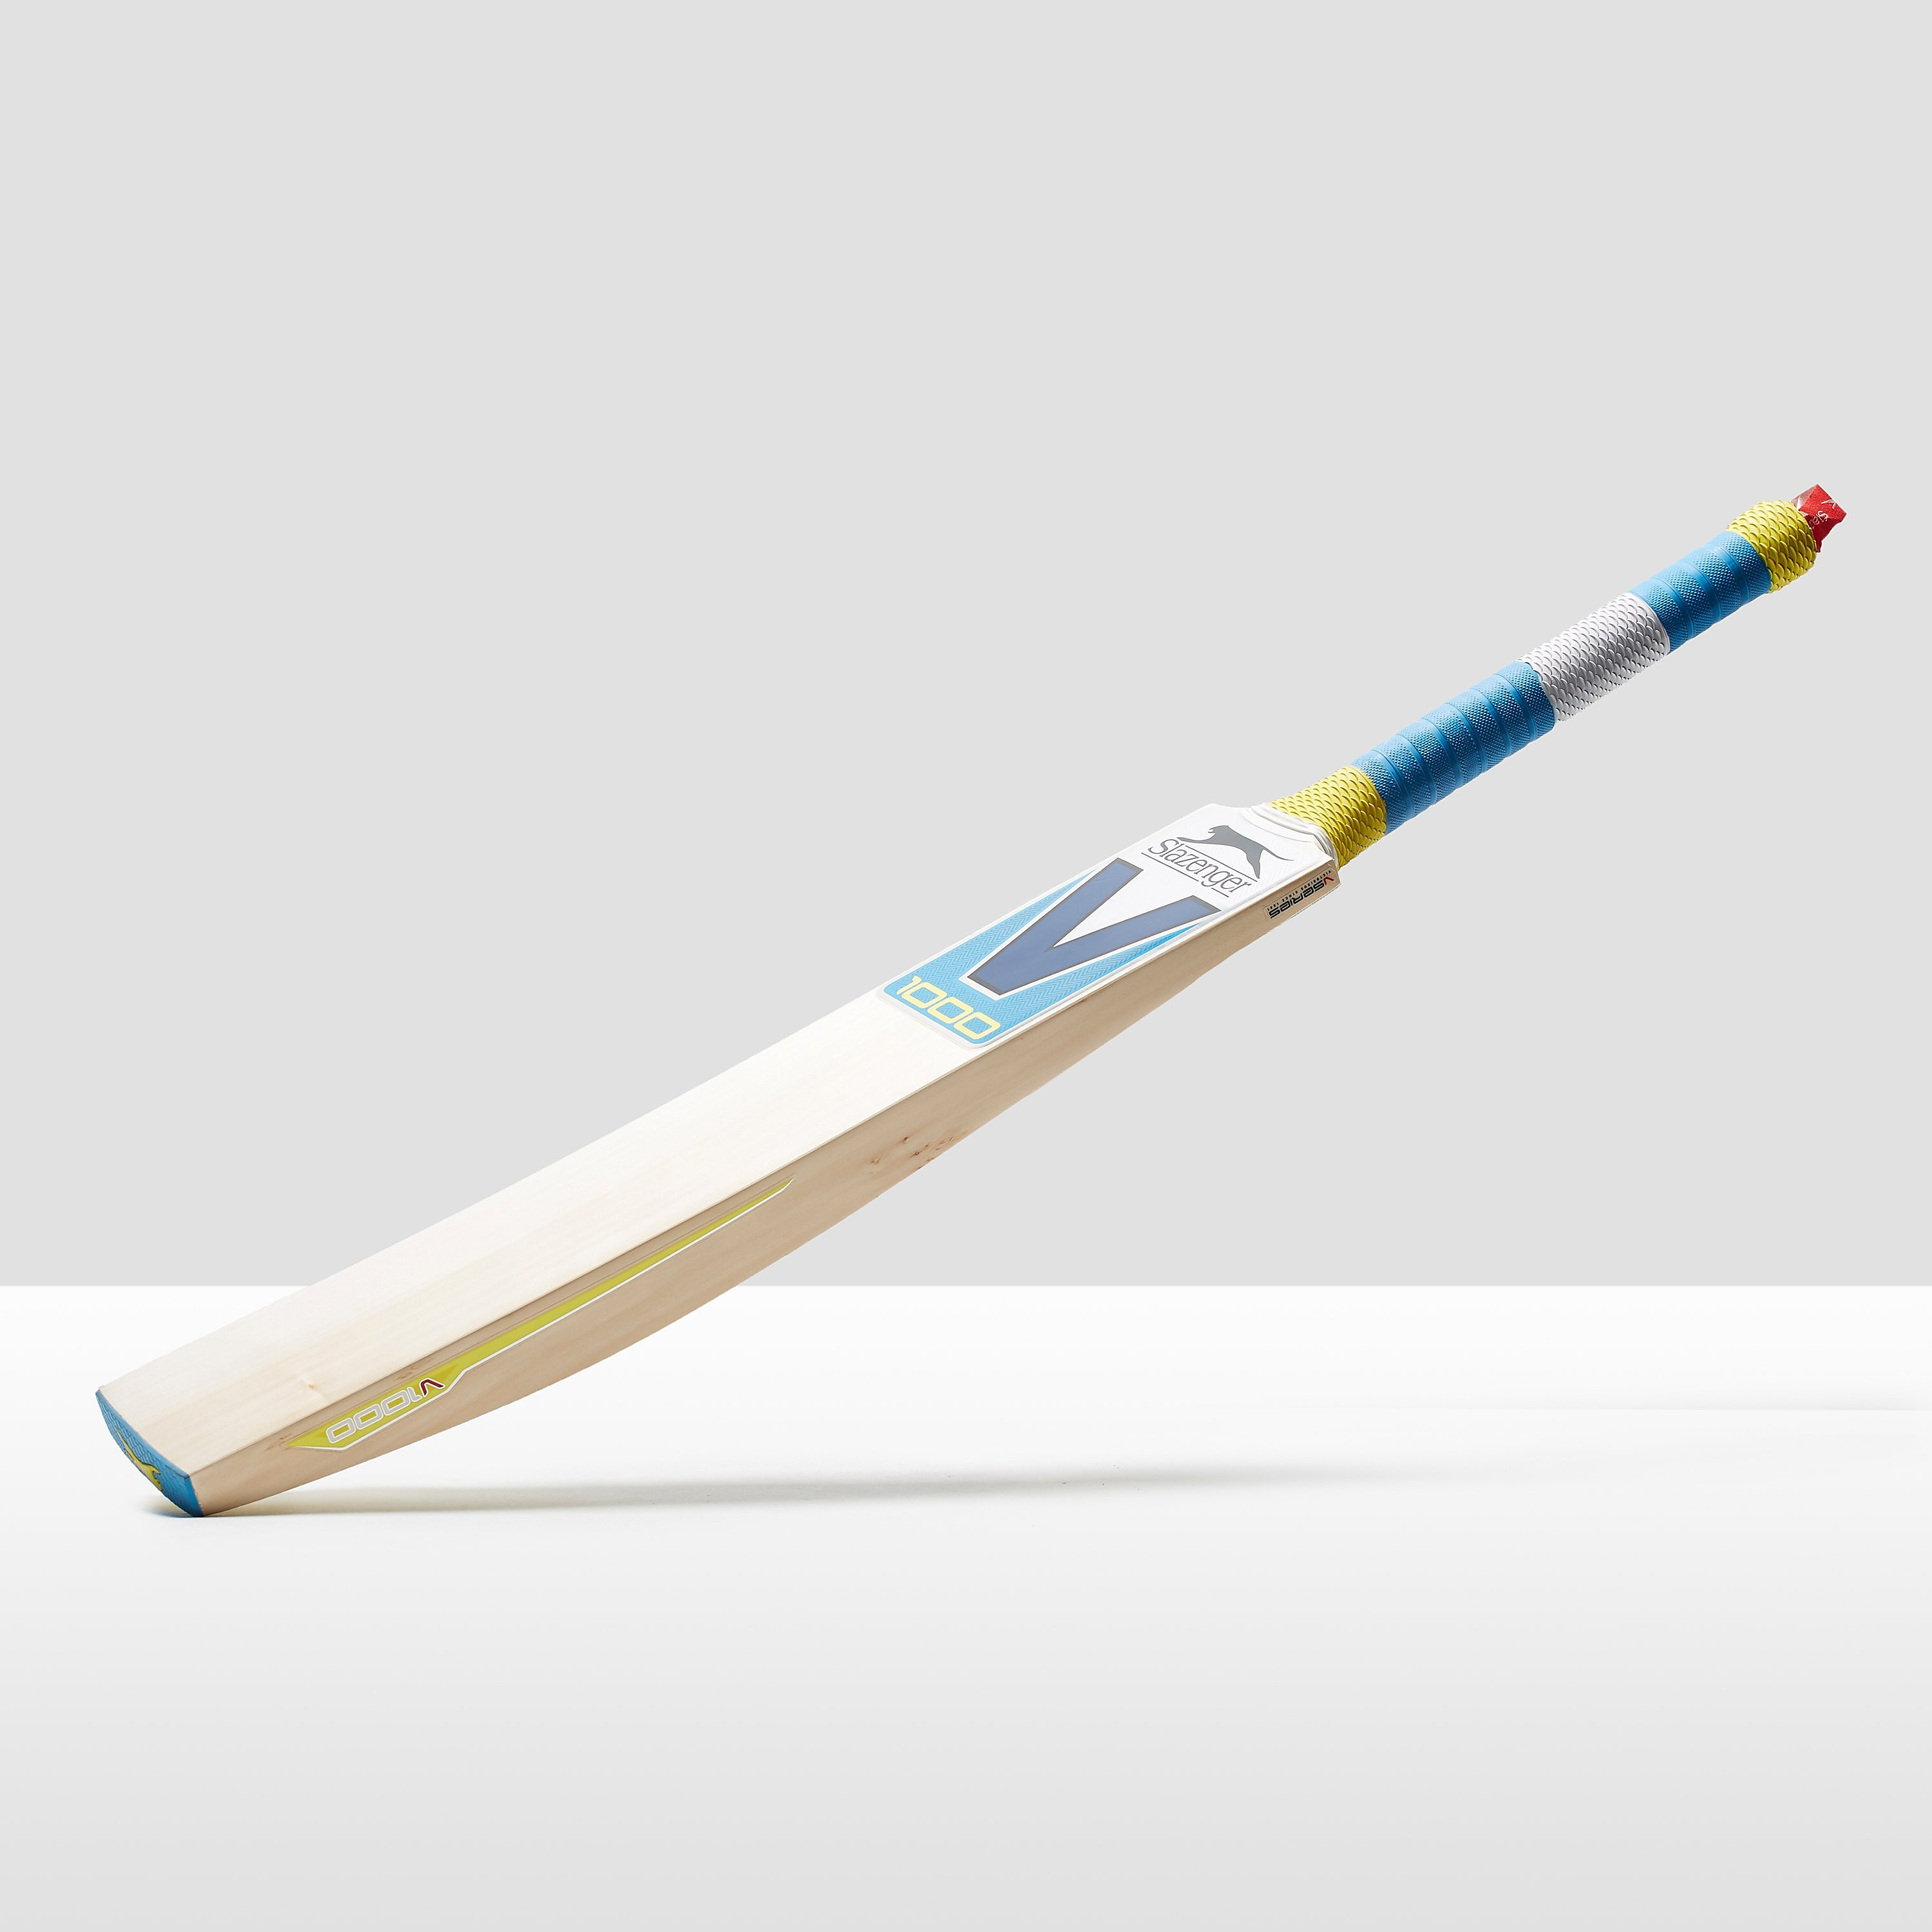 Slazenger V1000 G2 Cricket Bat